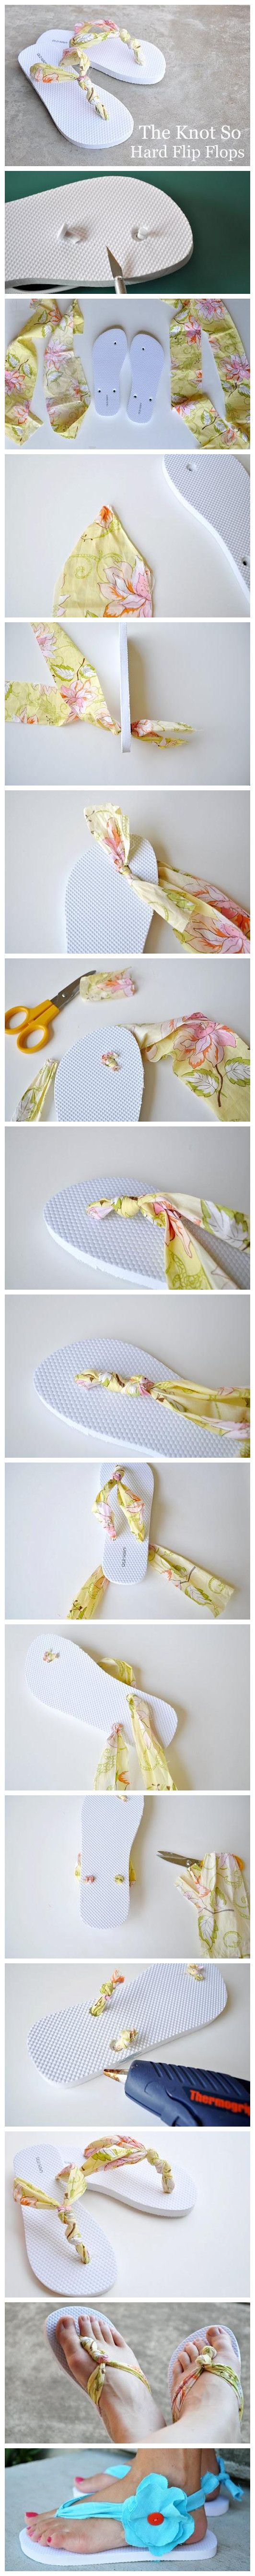 DIY Flip Flops- how fun are these?  I can make flip flops to match dresses I sew!